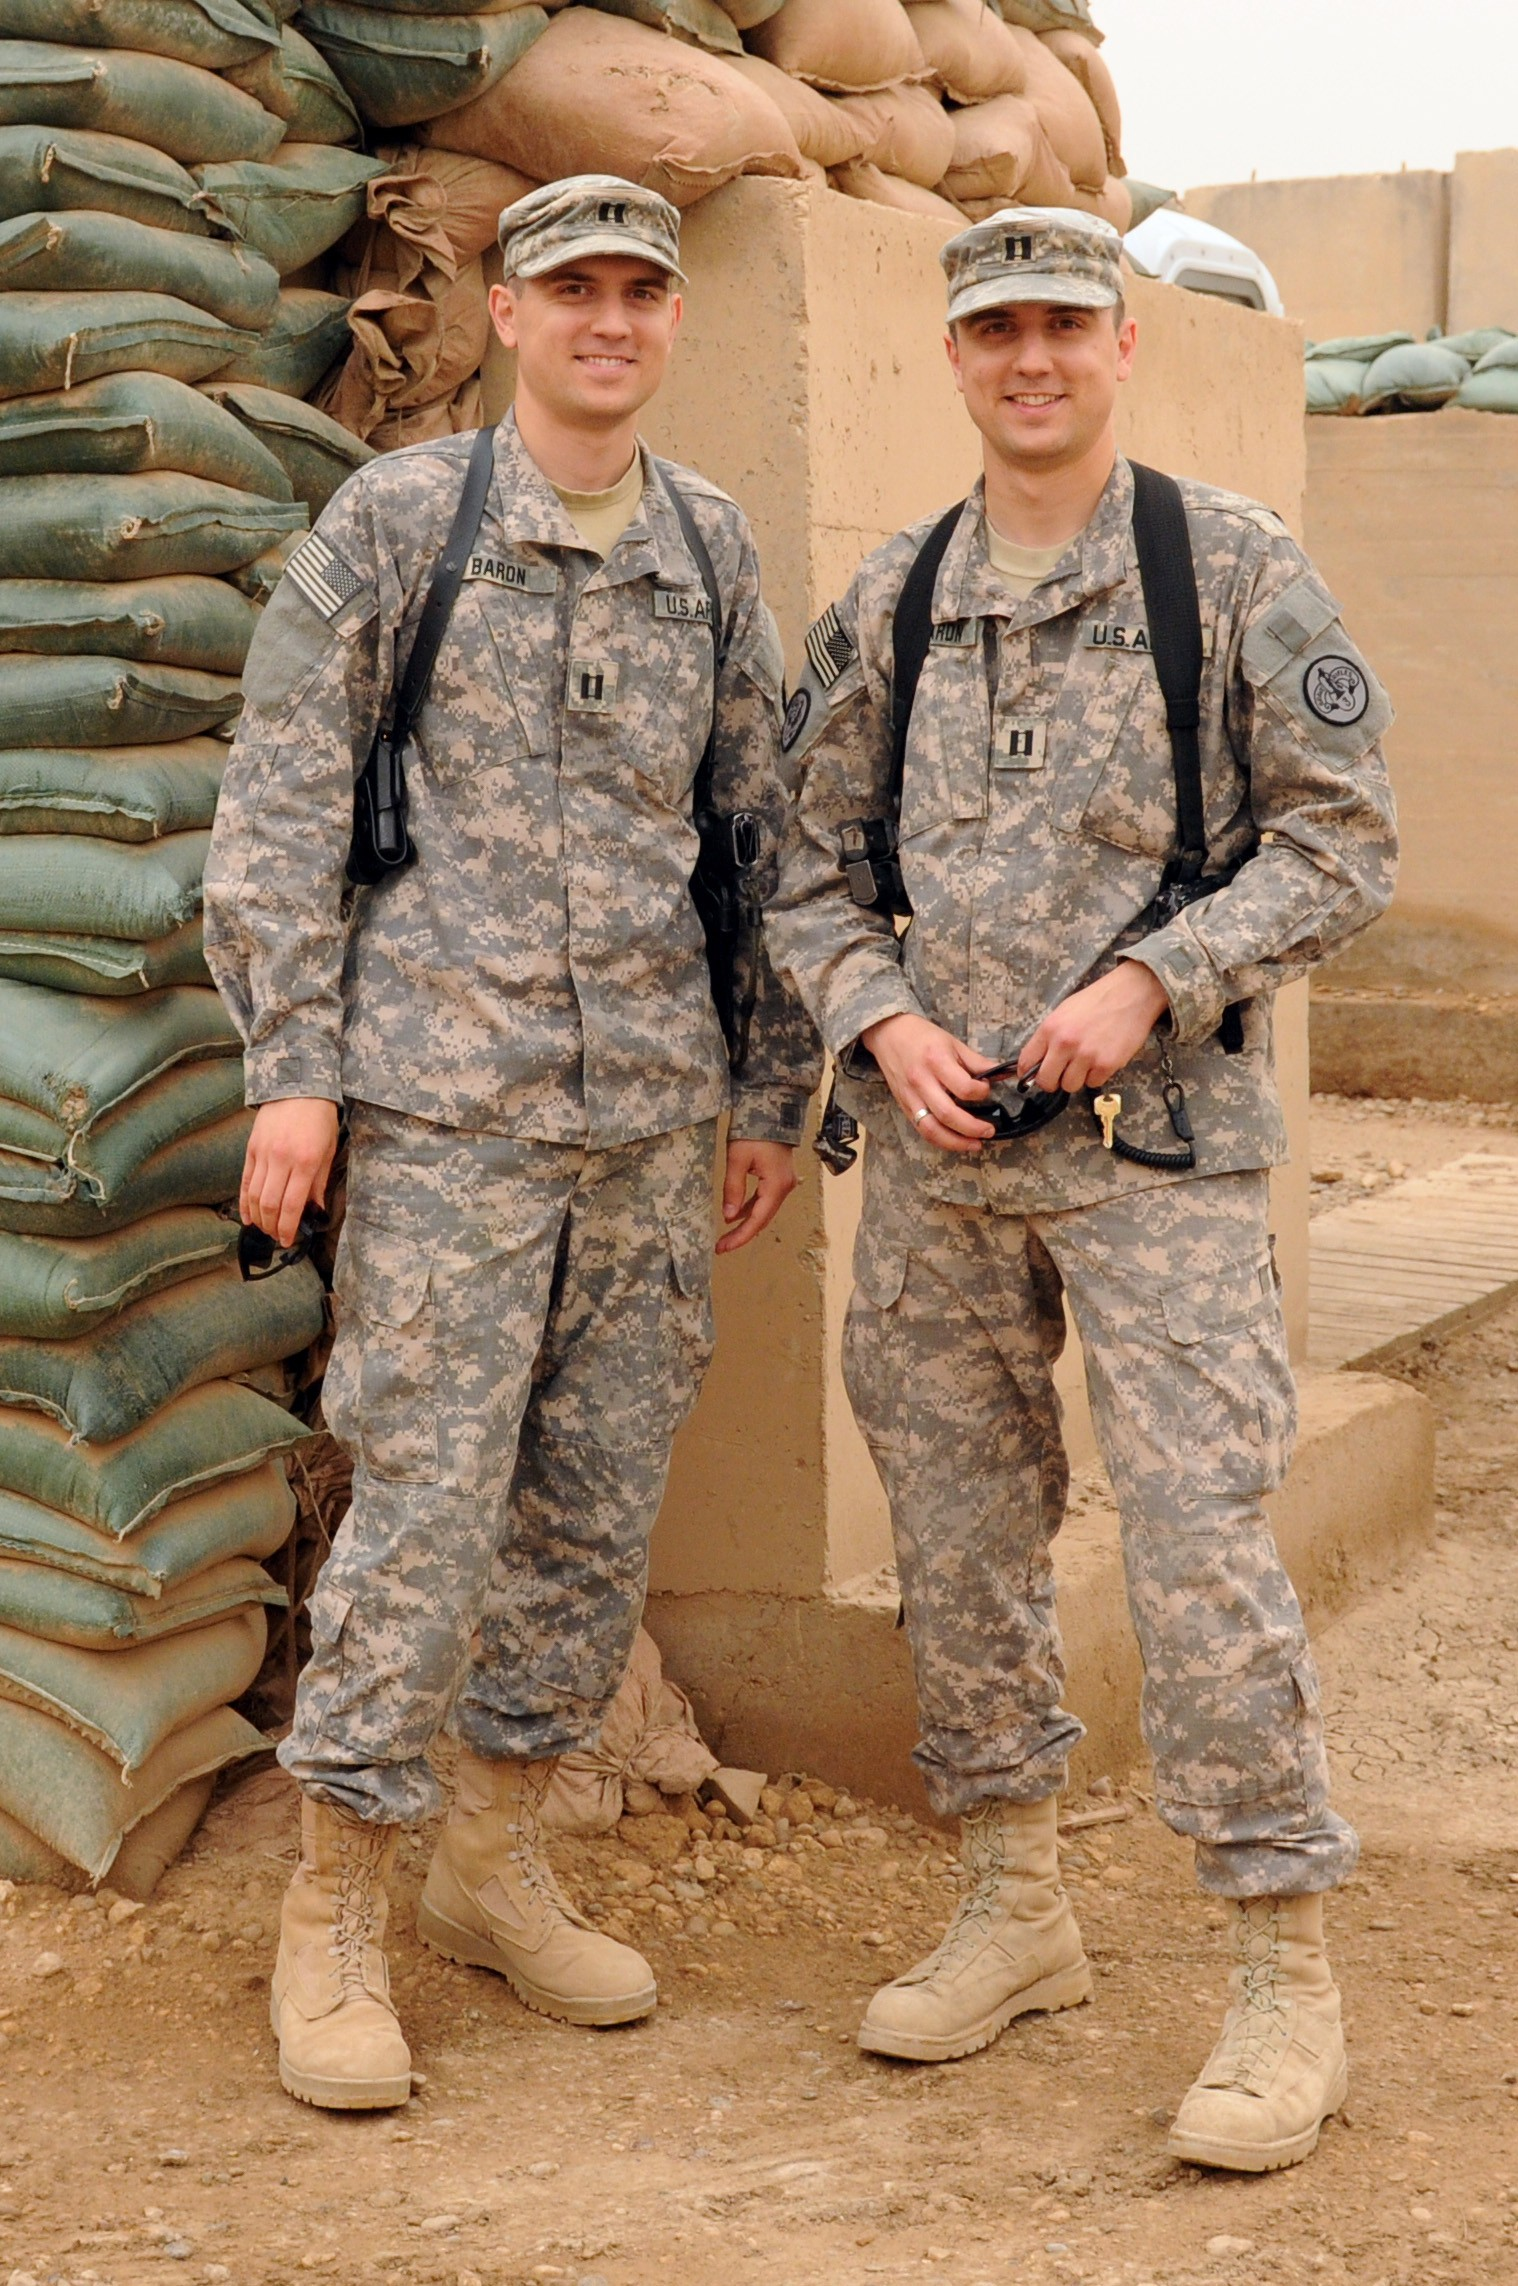 c5261c08 Closer than a brother: Army dentists' paths lead to southern Iraq ...